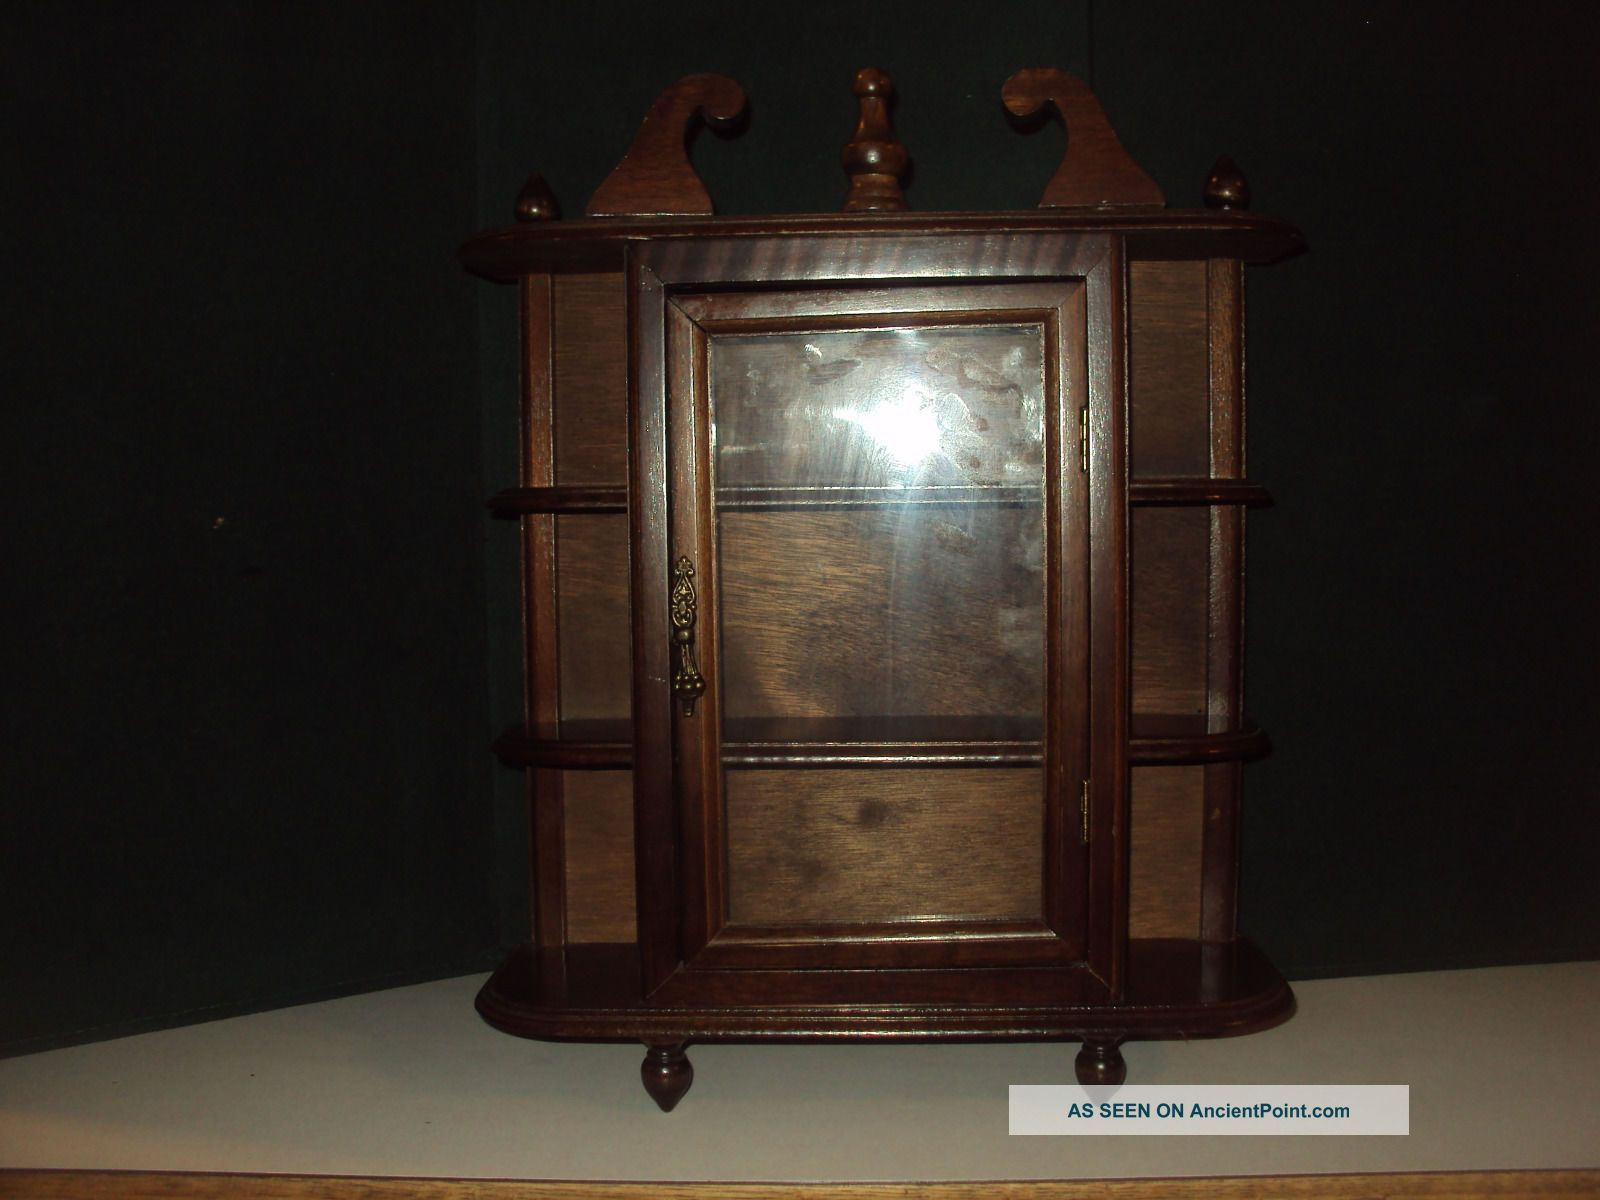 Vintage Wood Small Upright Hanging Showcase Curio Cabinet Glass Doors 2 Shelves Post-1950 photo